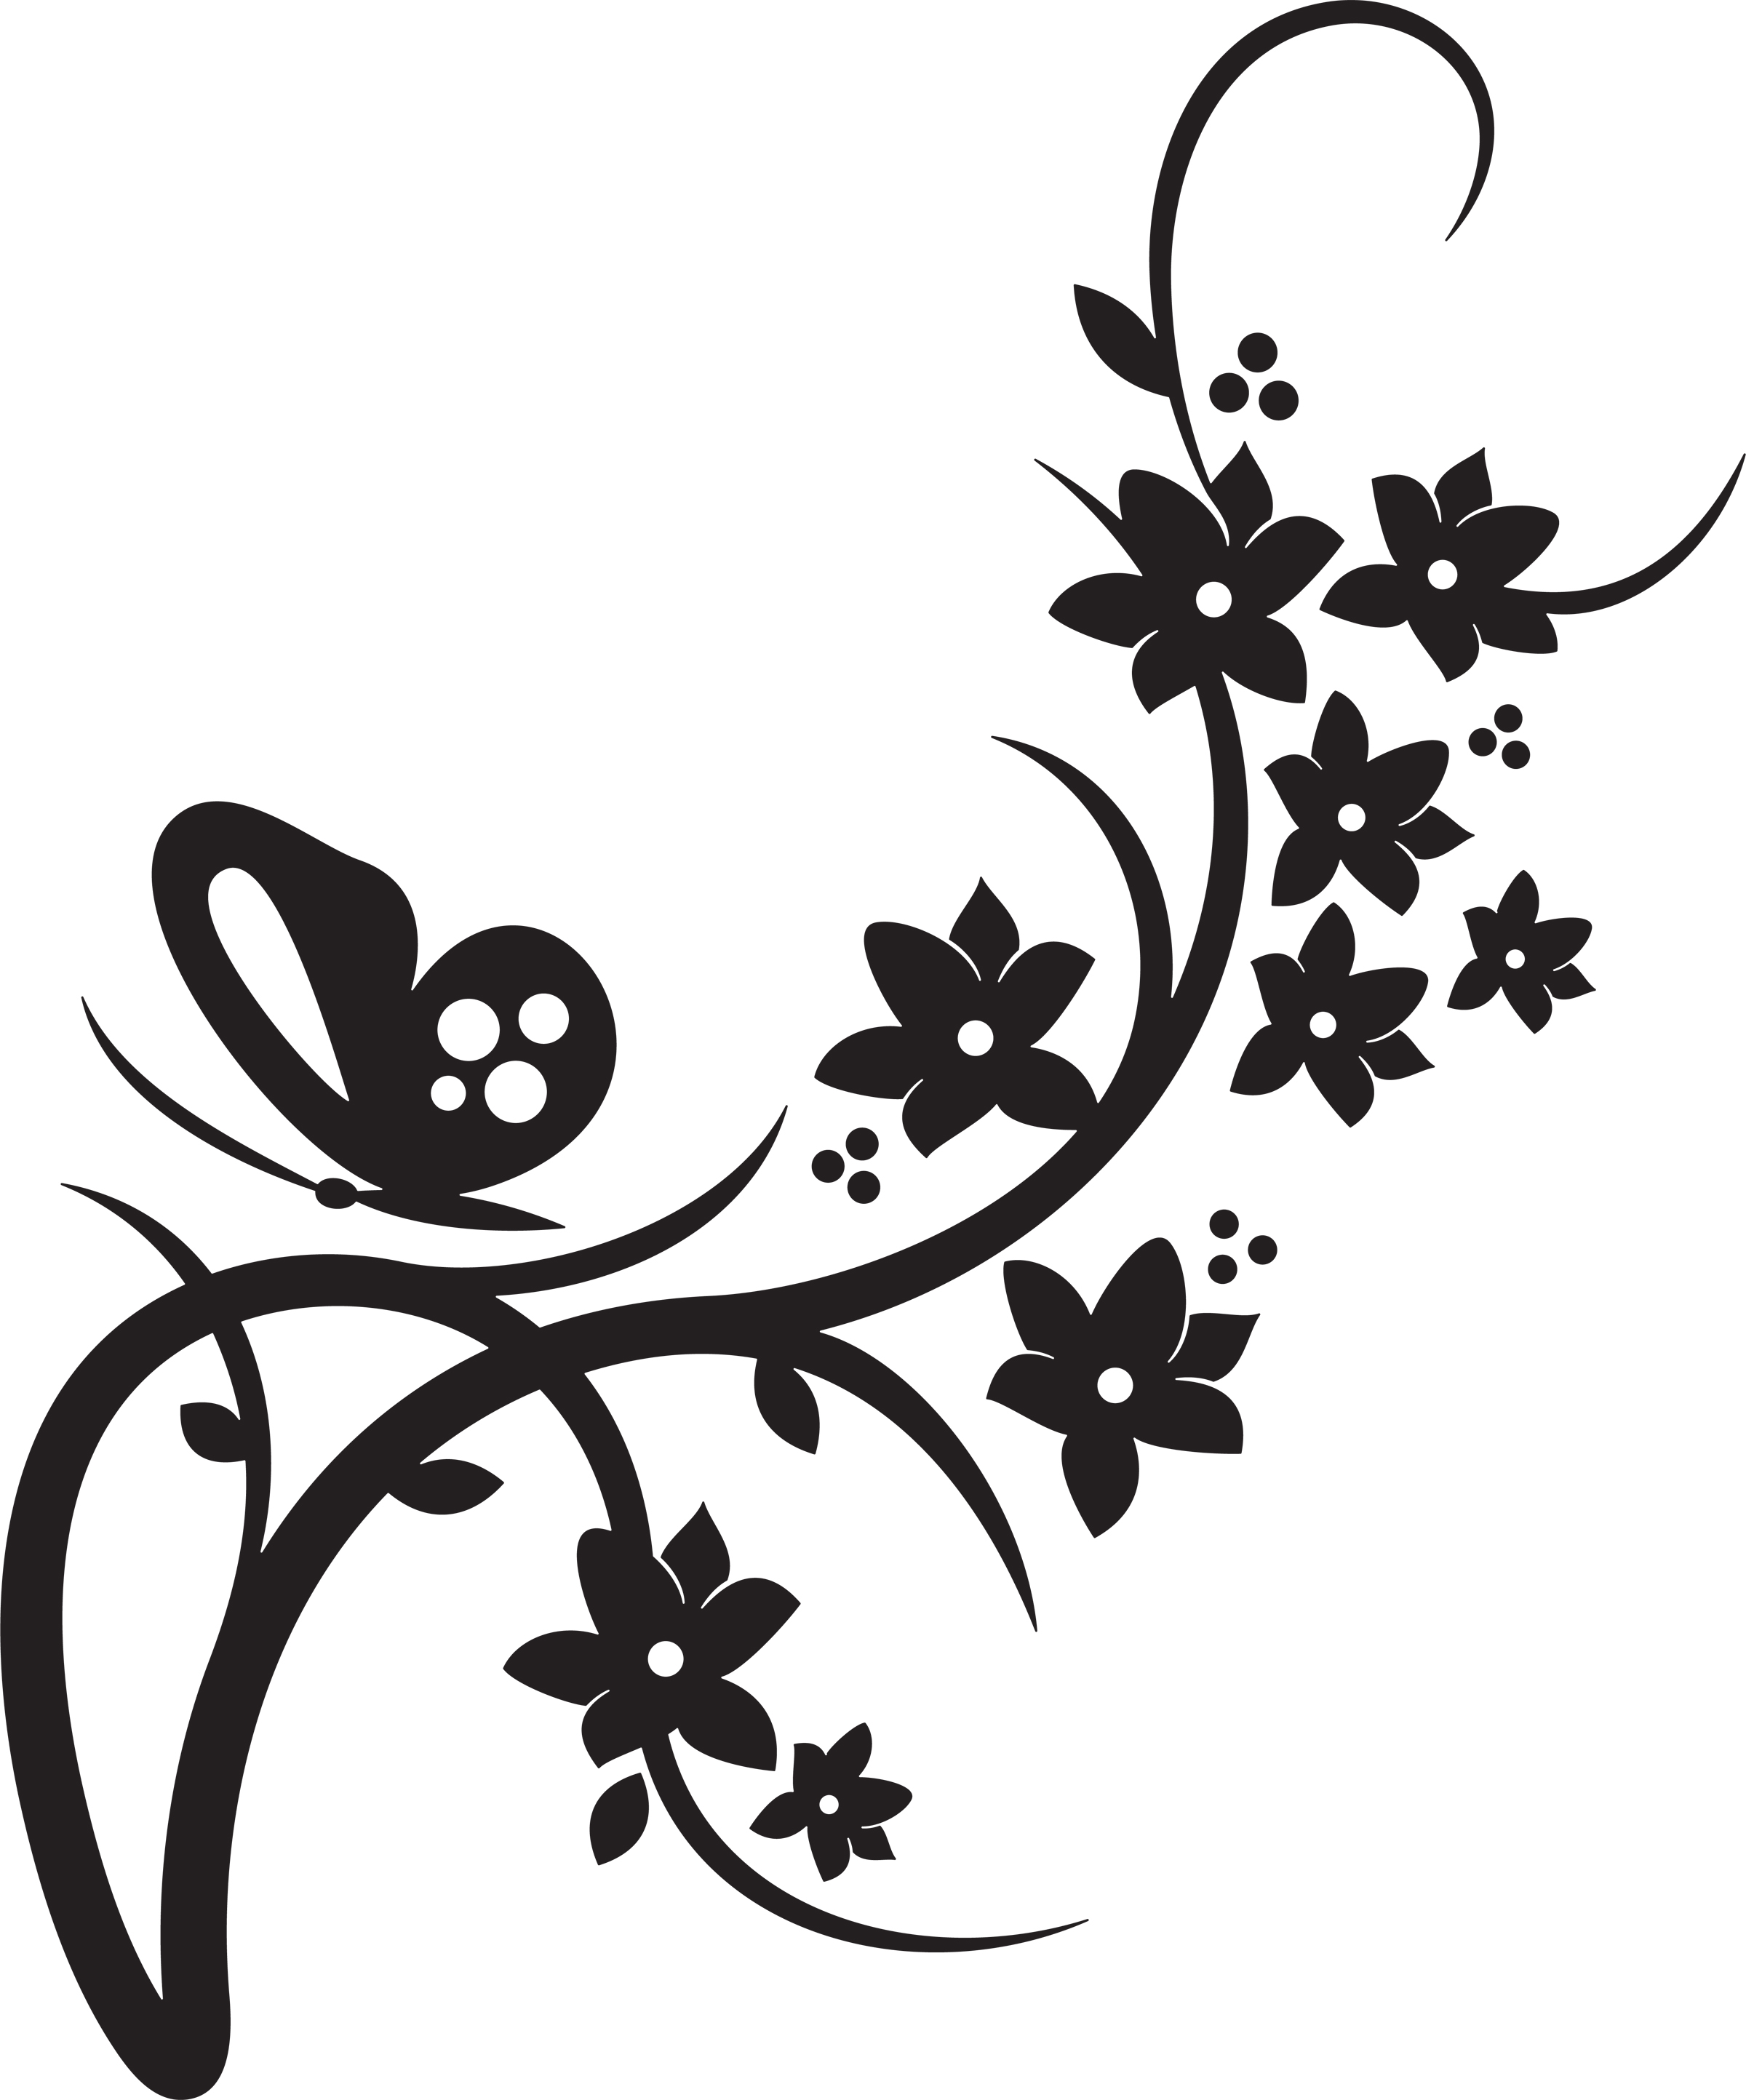 Custom free image . Butterfly clipart wedding